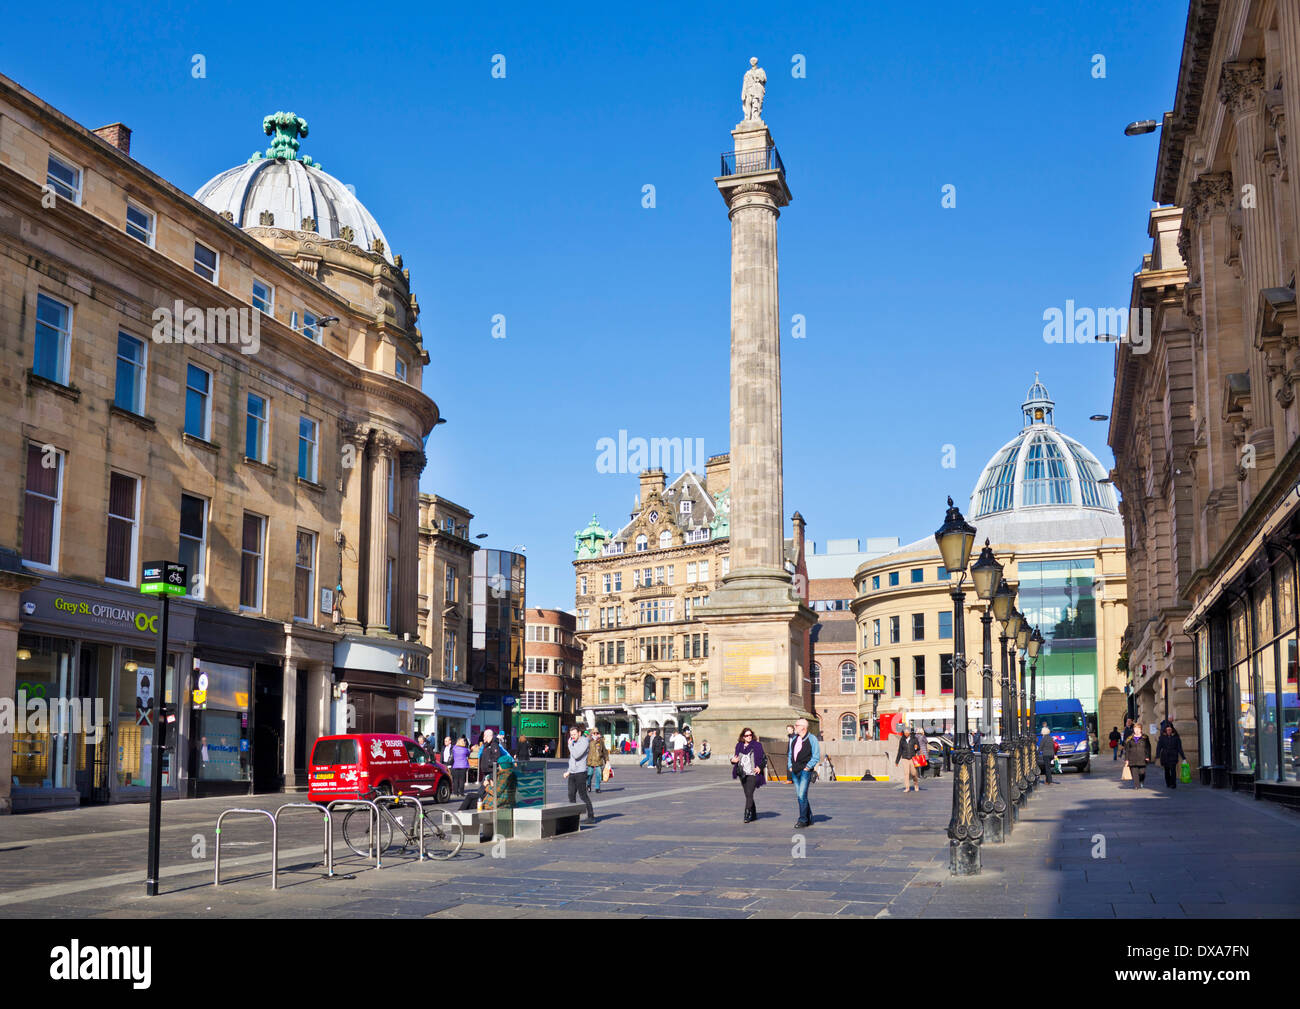 Grey's Monument Grey street Grainger Town Newcastle upon Tyne city centre Tyne and Wear England GB UK EU Europe - Stock Image